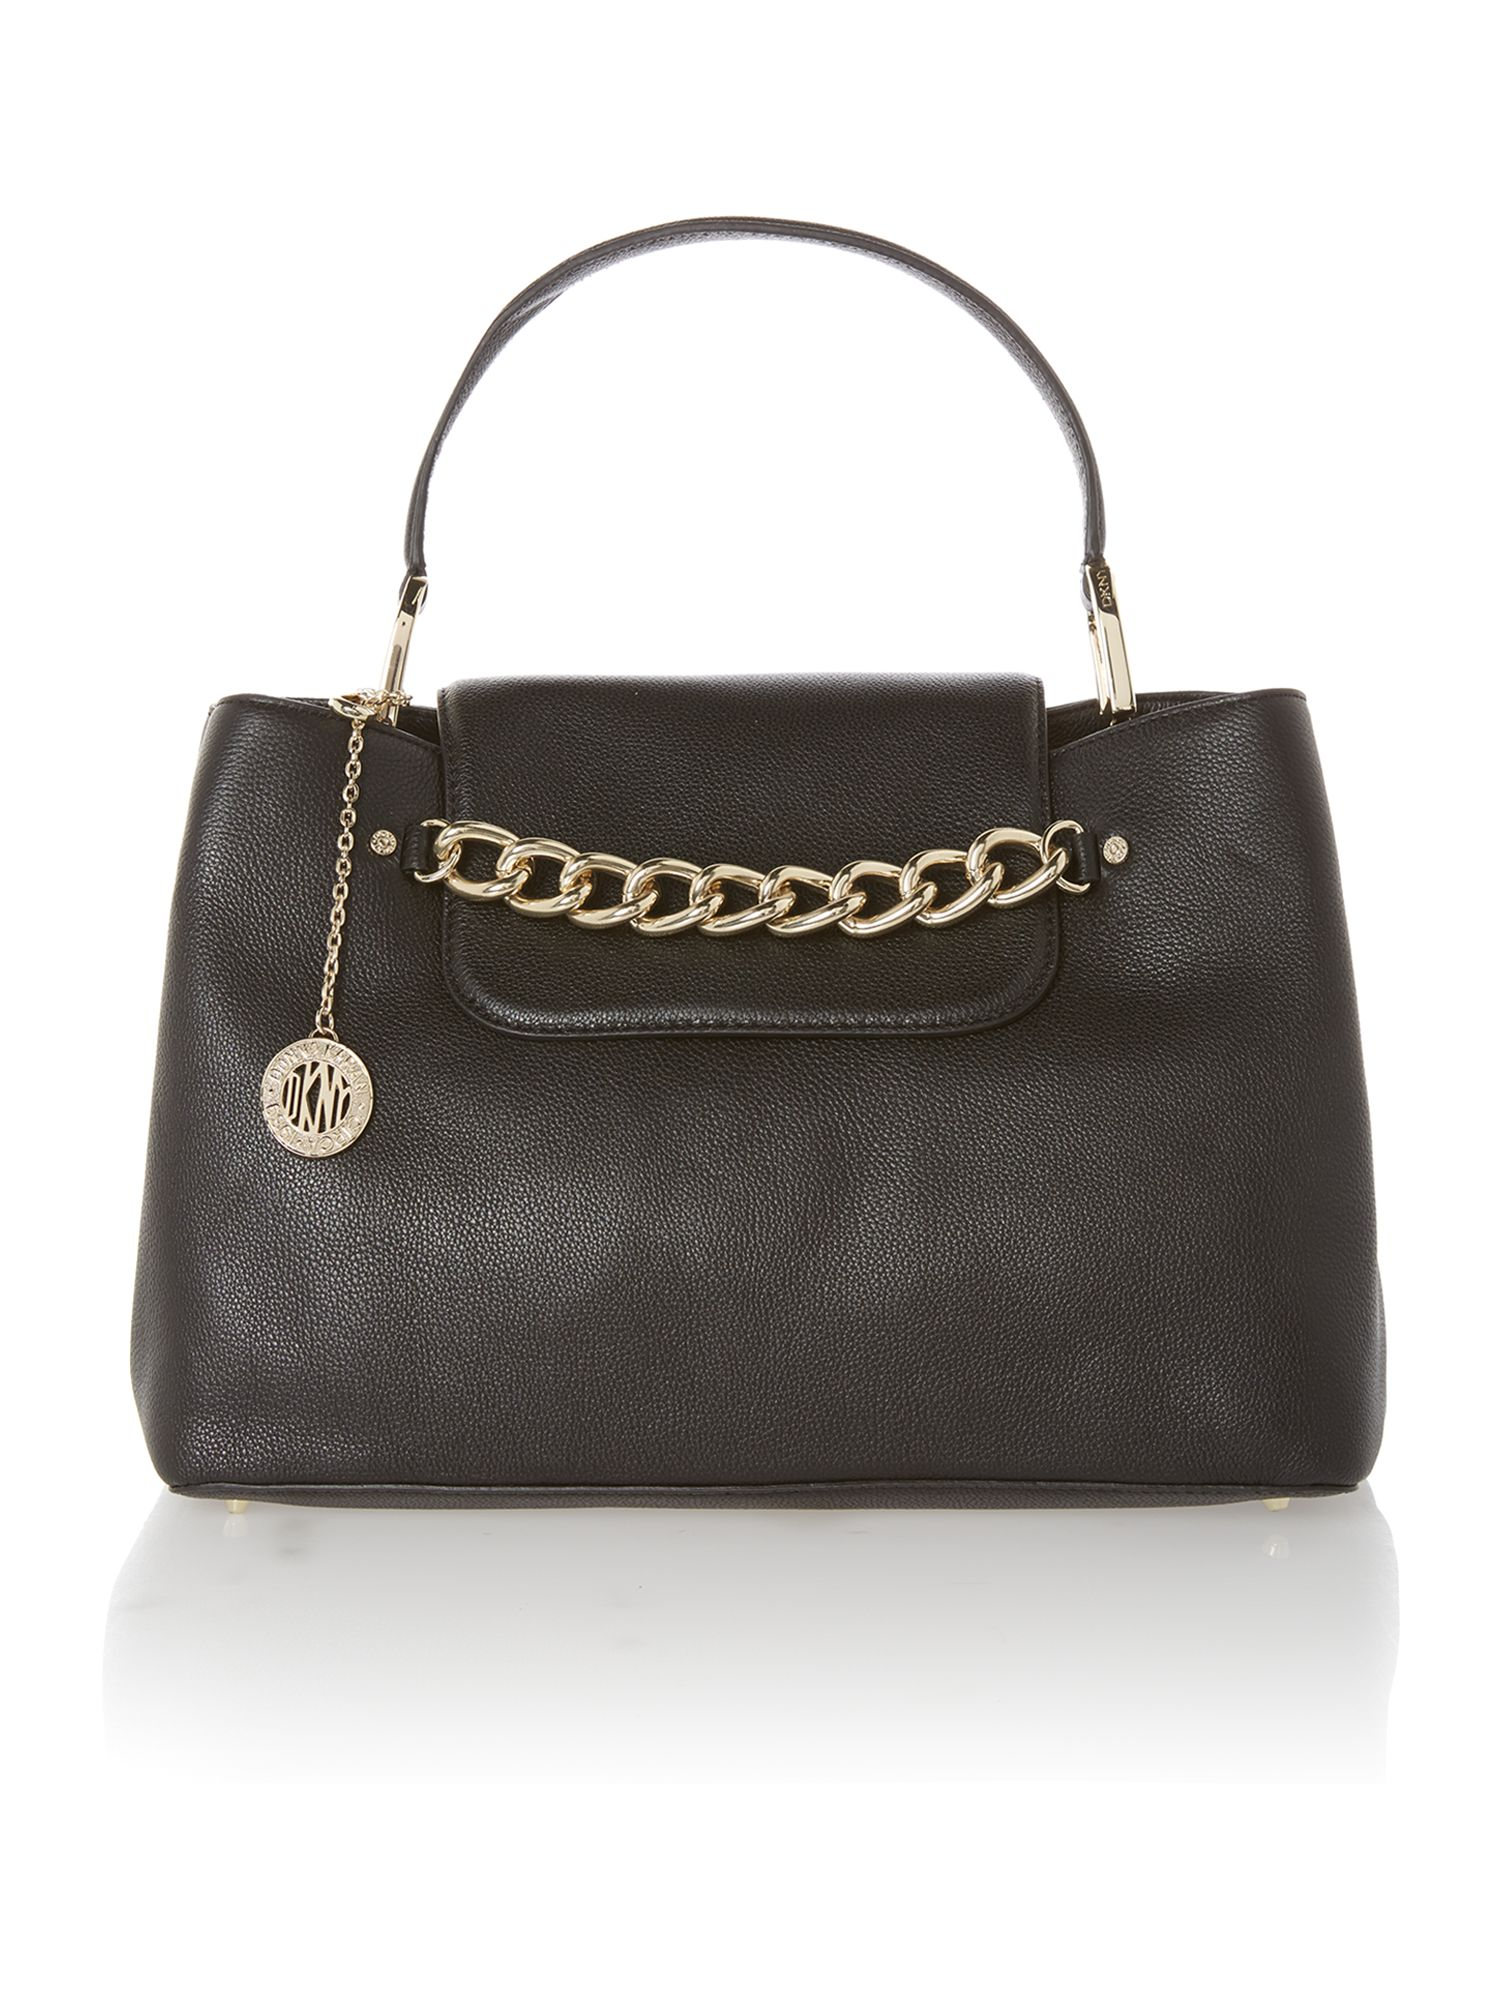 Chelsea black large tote bag with chain detail